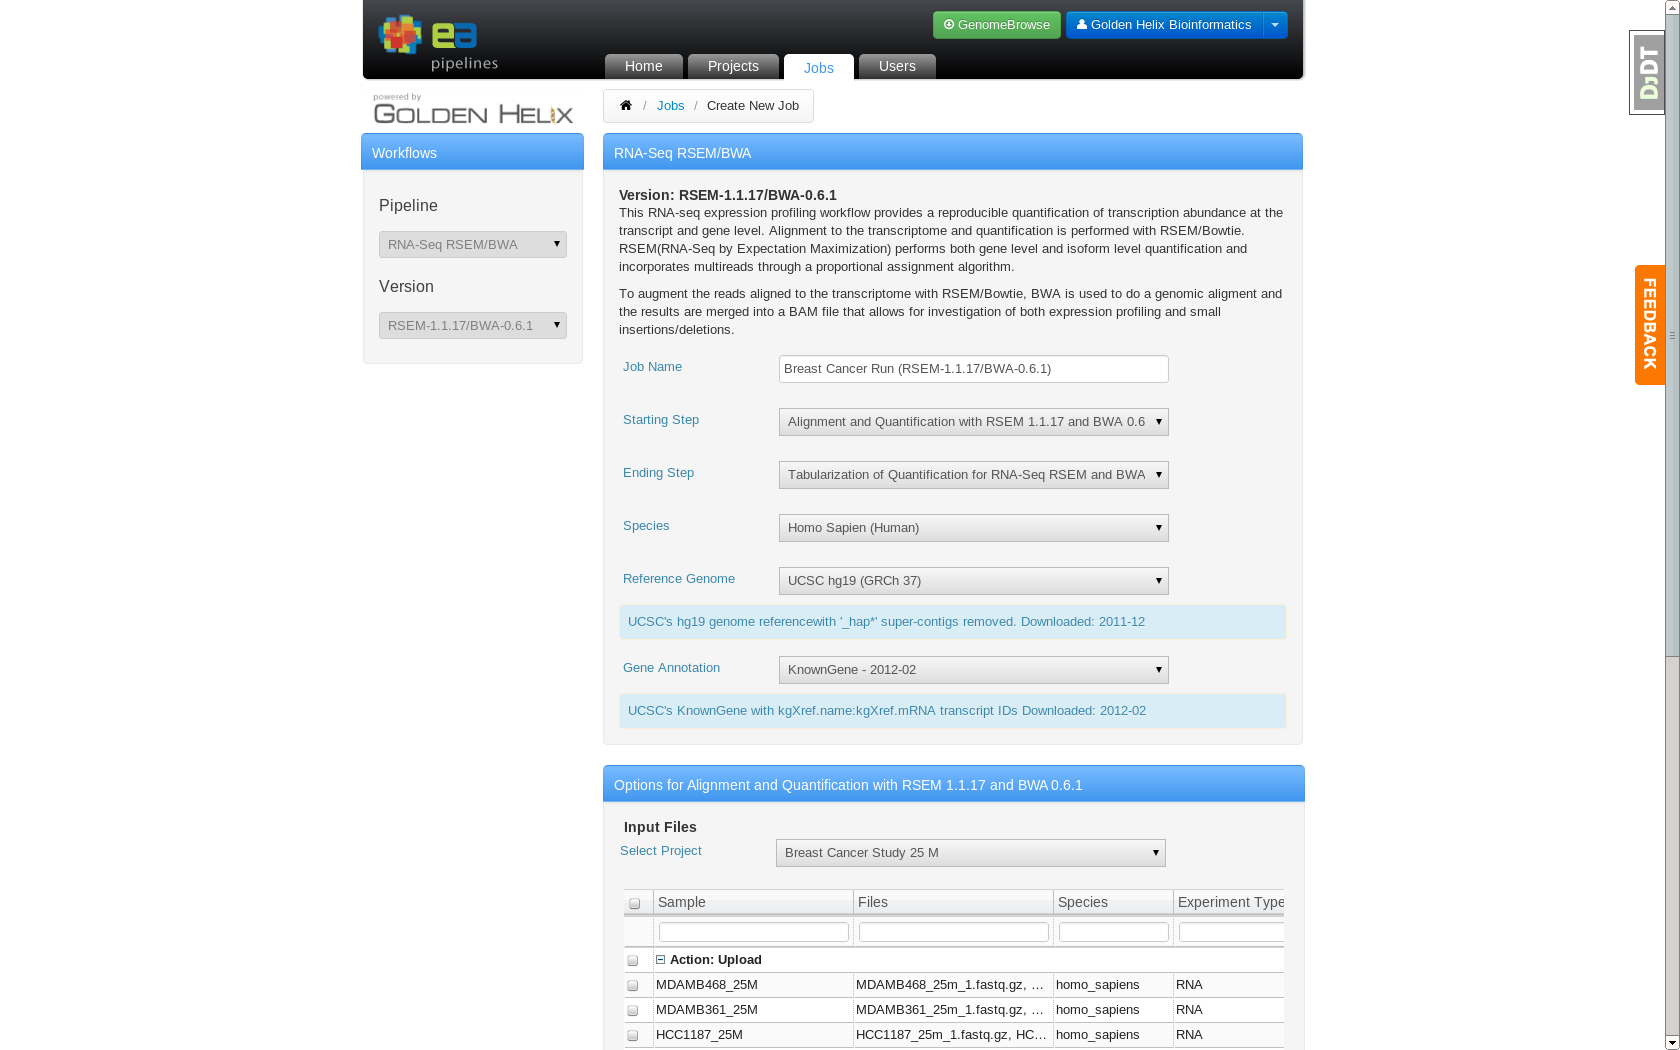 Job Creation page which allows users to specify analysis settings